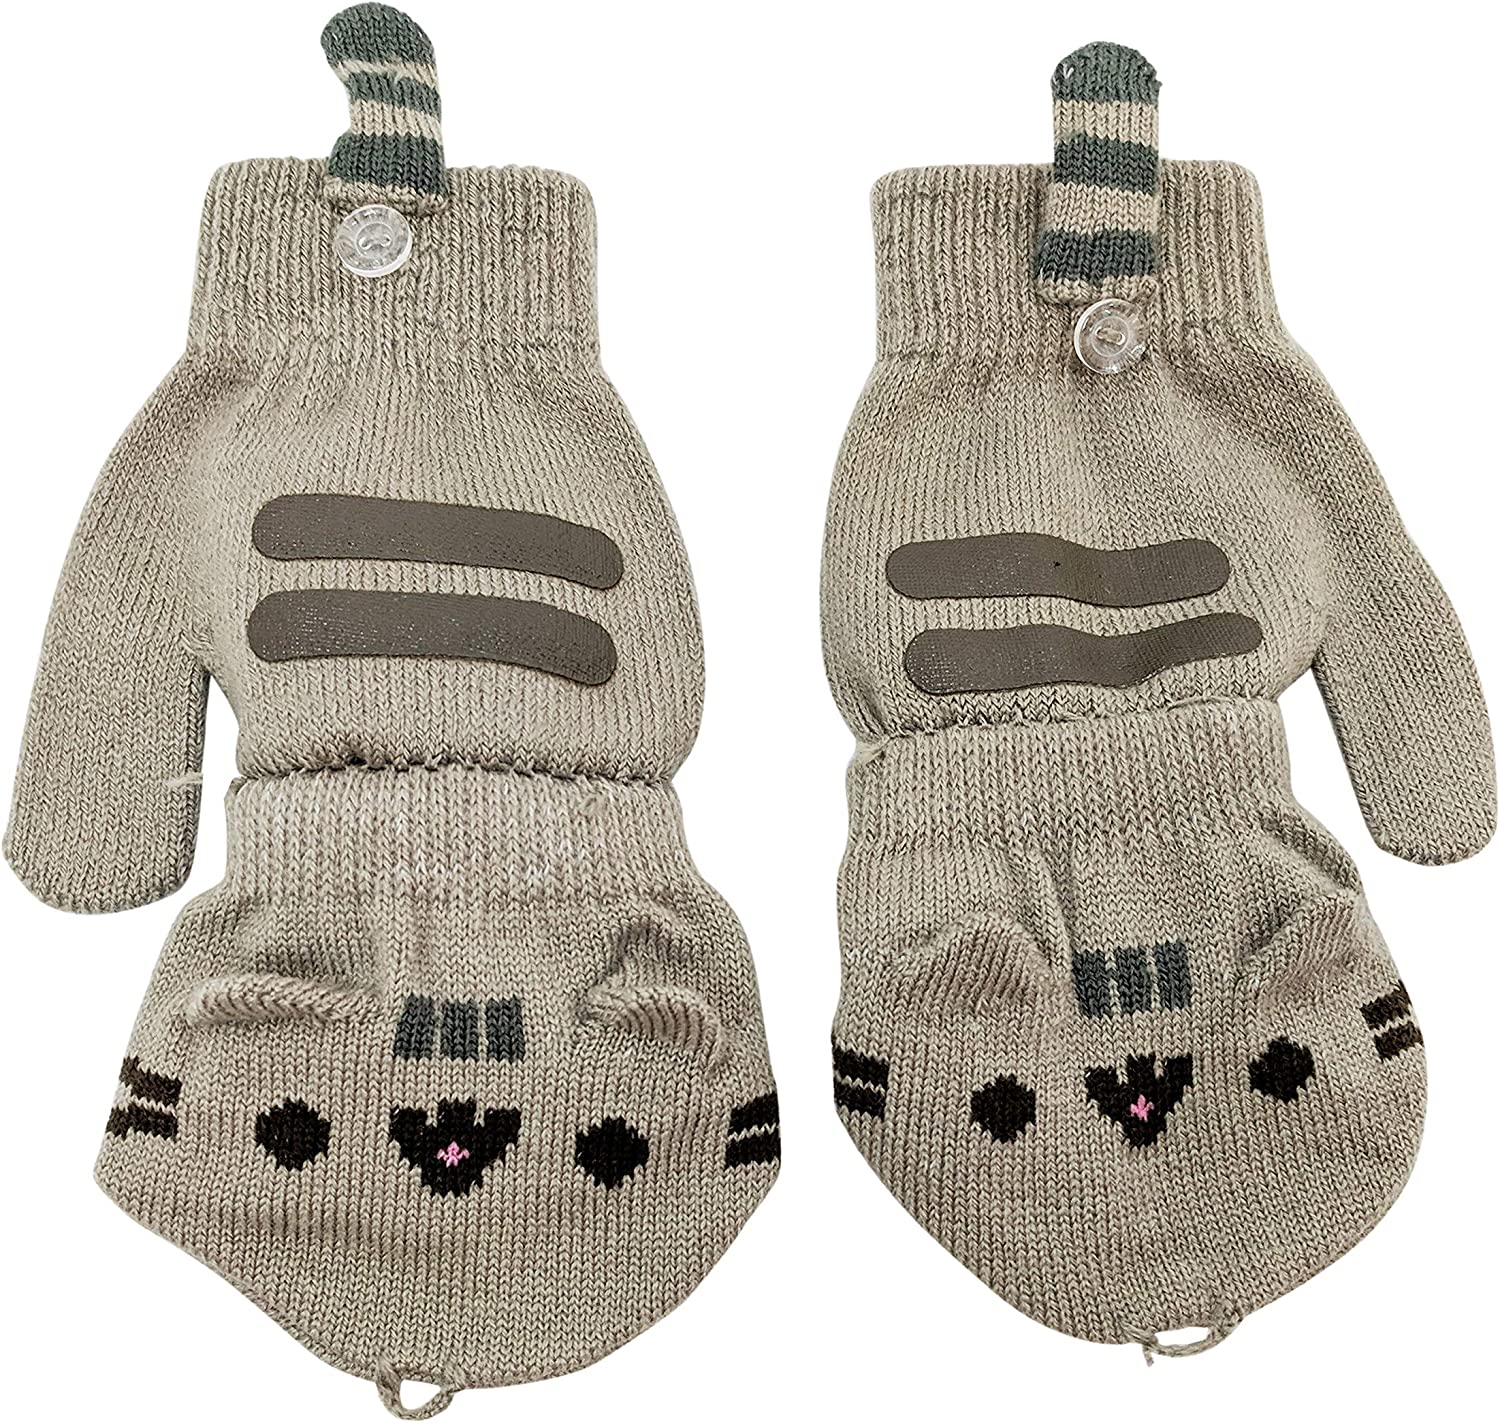 All items in the store outlet Pusheen Cat Face Paws Convertible Fingerless Mi Women's